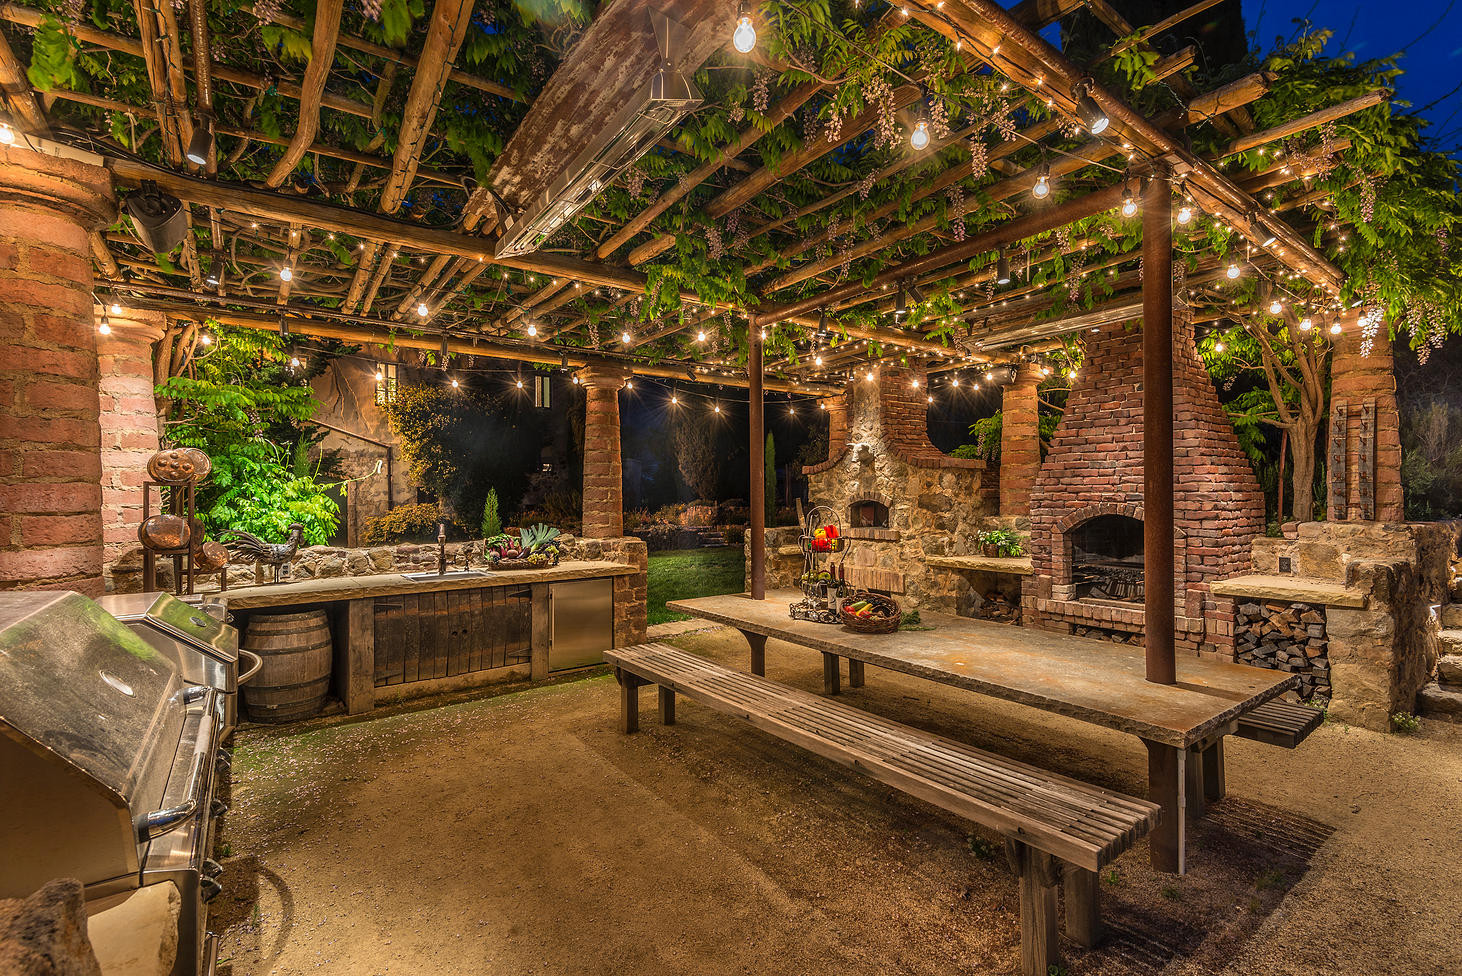 75 Beautiful Rustic Outdoor Kitchen Design Houzz Pictures Ideas July 2021 Houzz